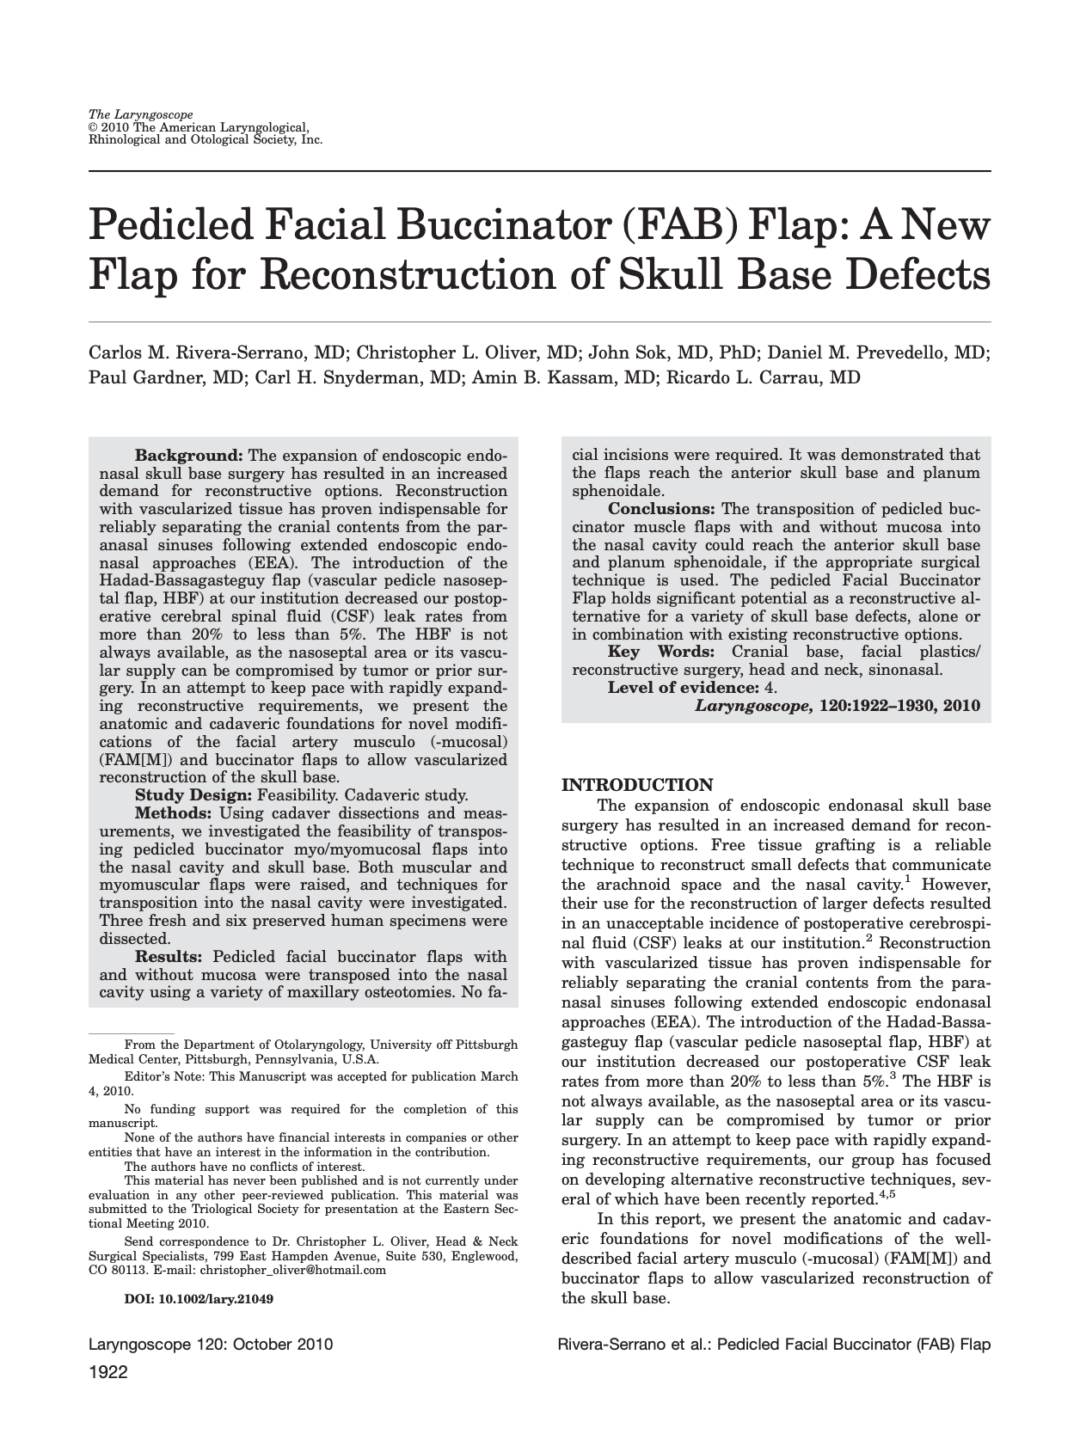 Pedicled Facial Buccinator (FAB) Flap: A New Flap for Reconstruction of Skull Base Defects